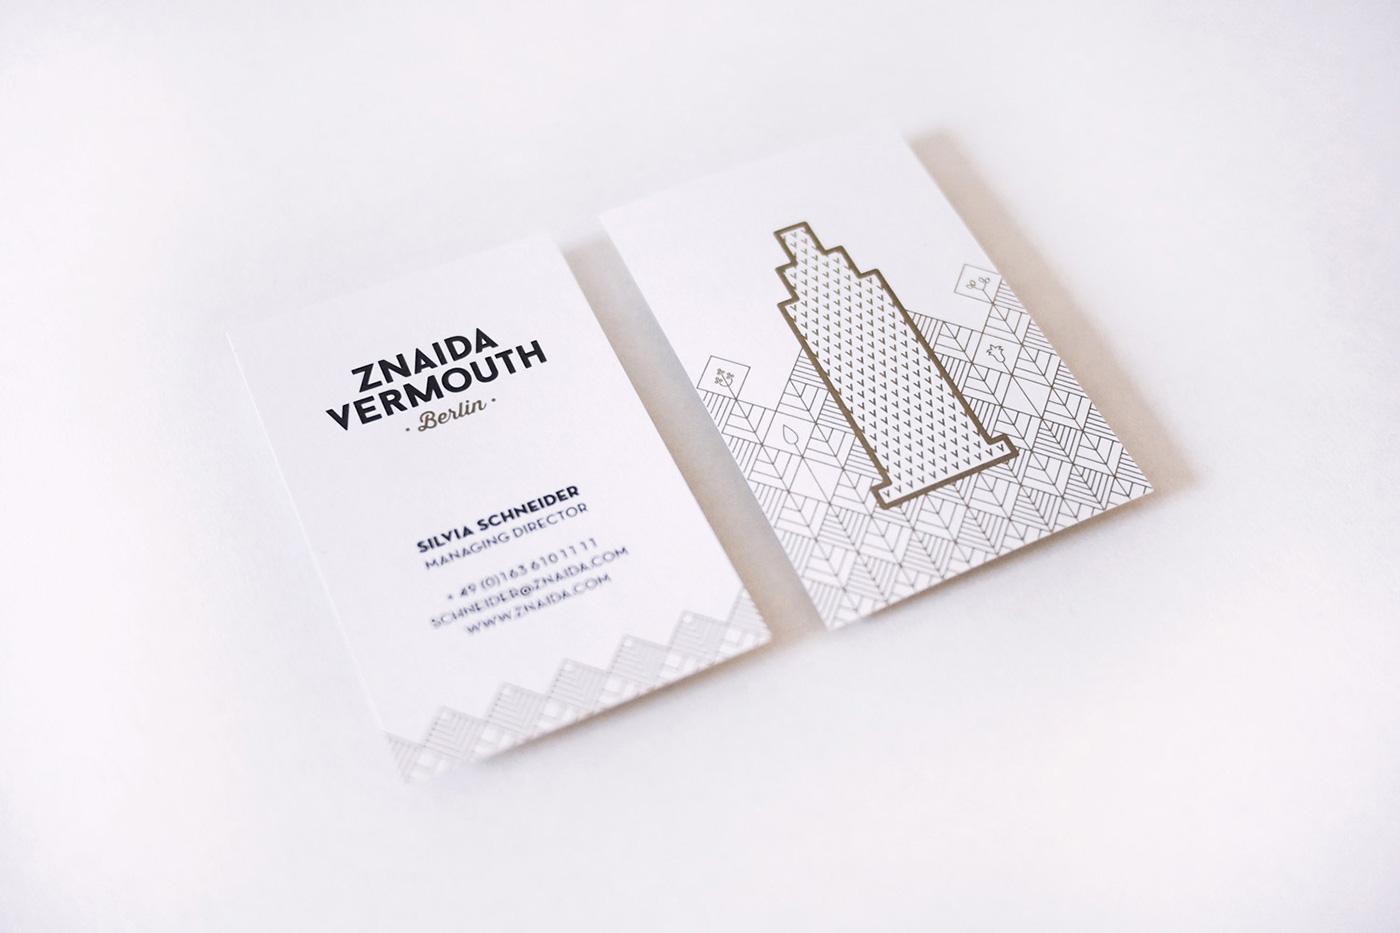 ZNAIDA vermouth design by upstruct